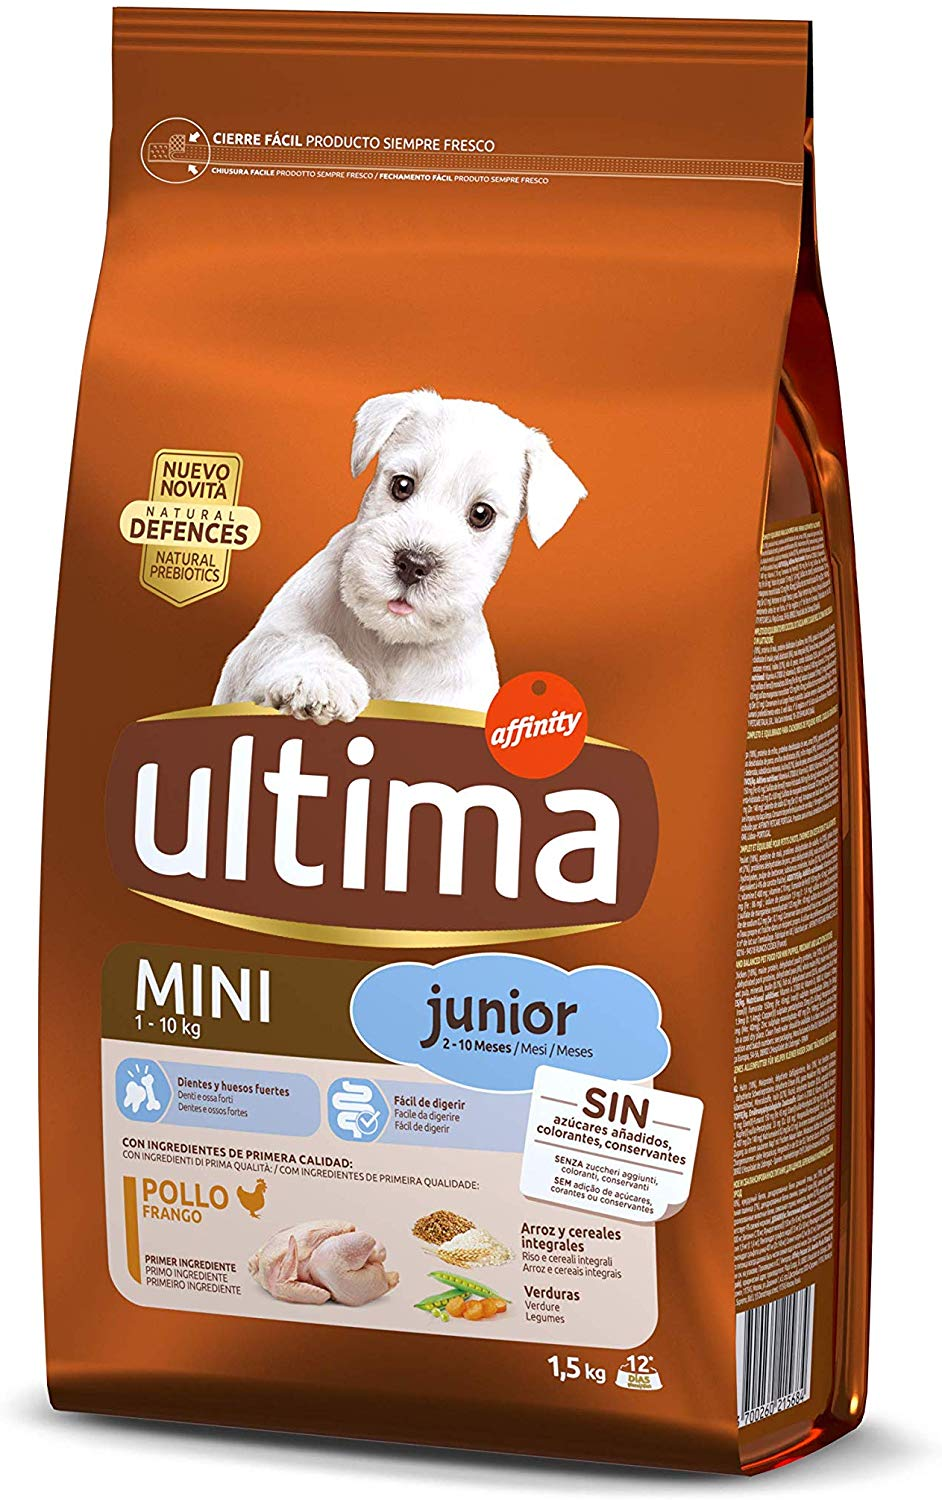 Ultima de affinity Schnauzer Junior